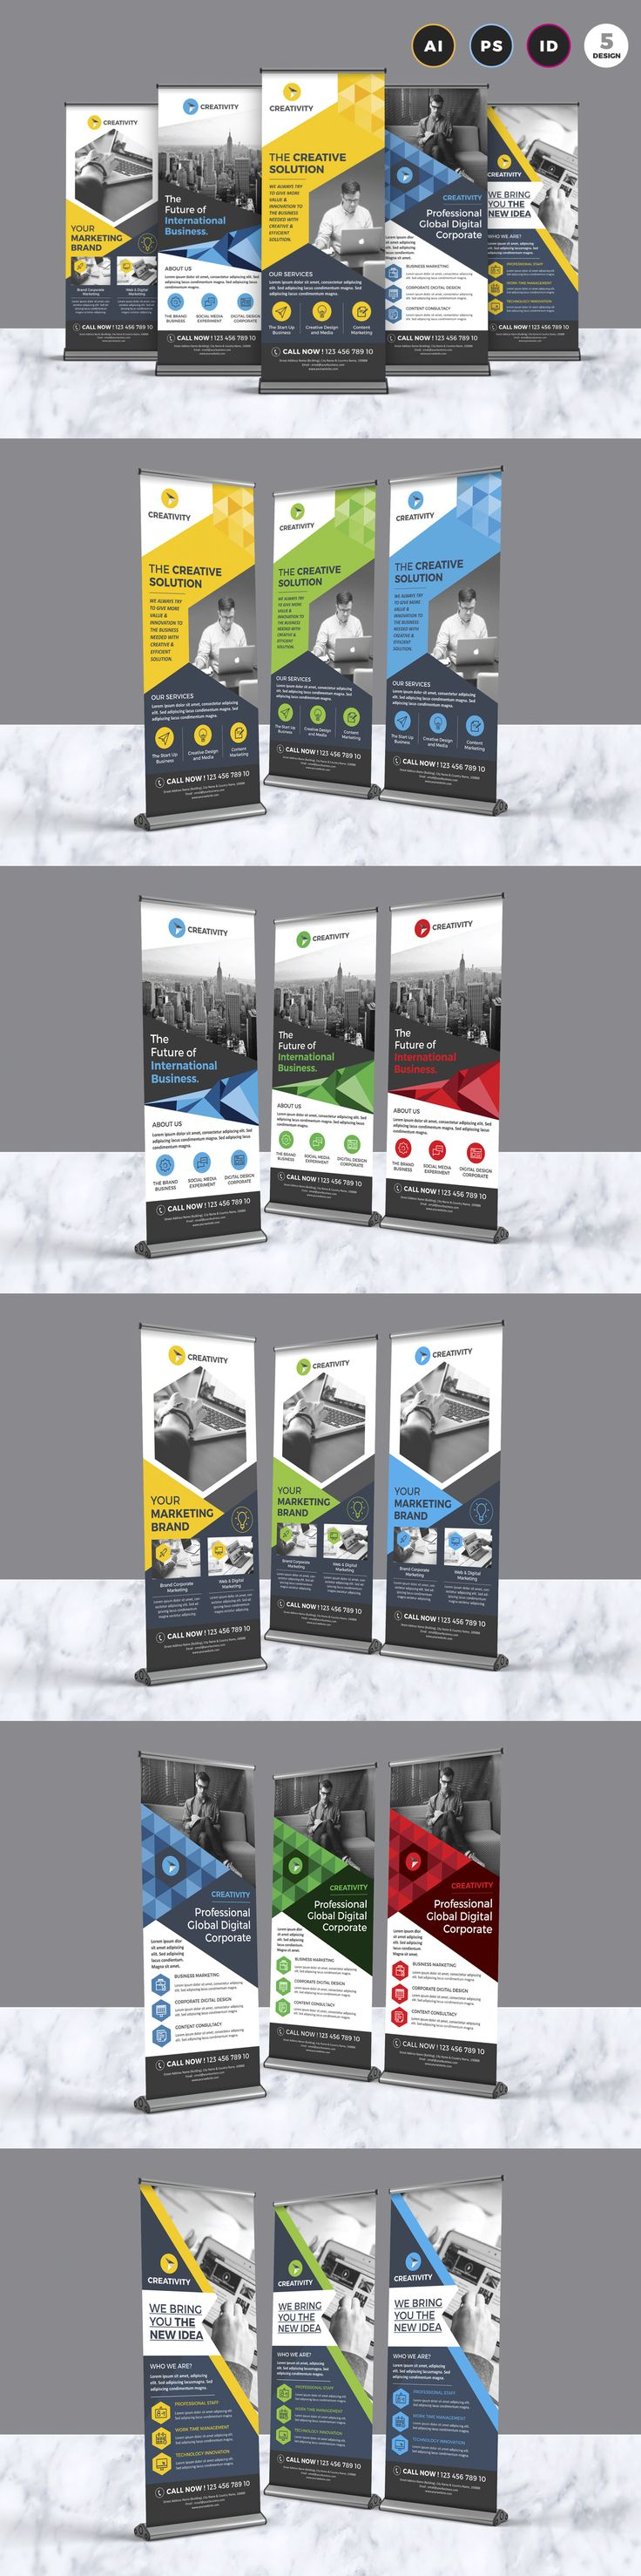 5 roll-up Banners Design Template With Include Adobe Photoshop, Illustrator, & inDesign Version